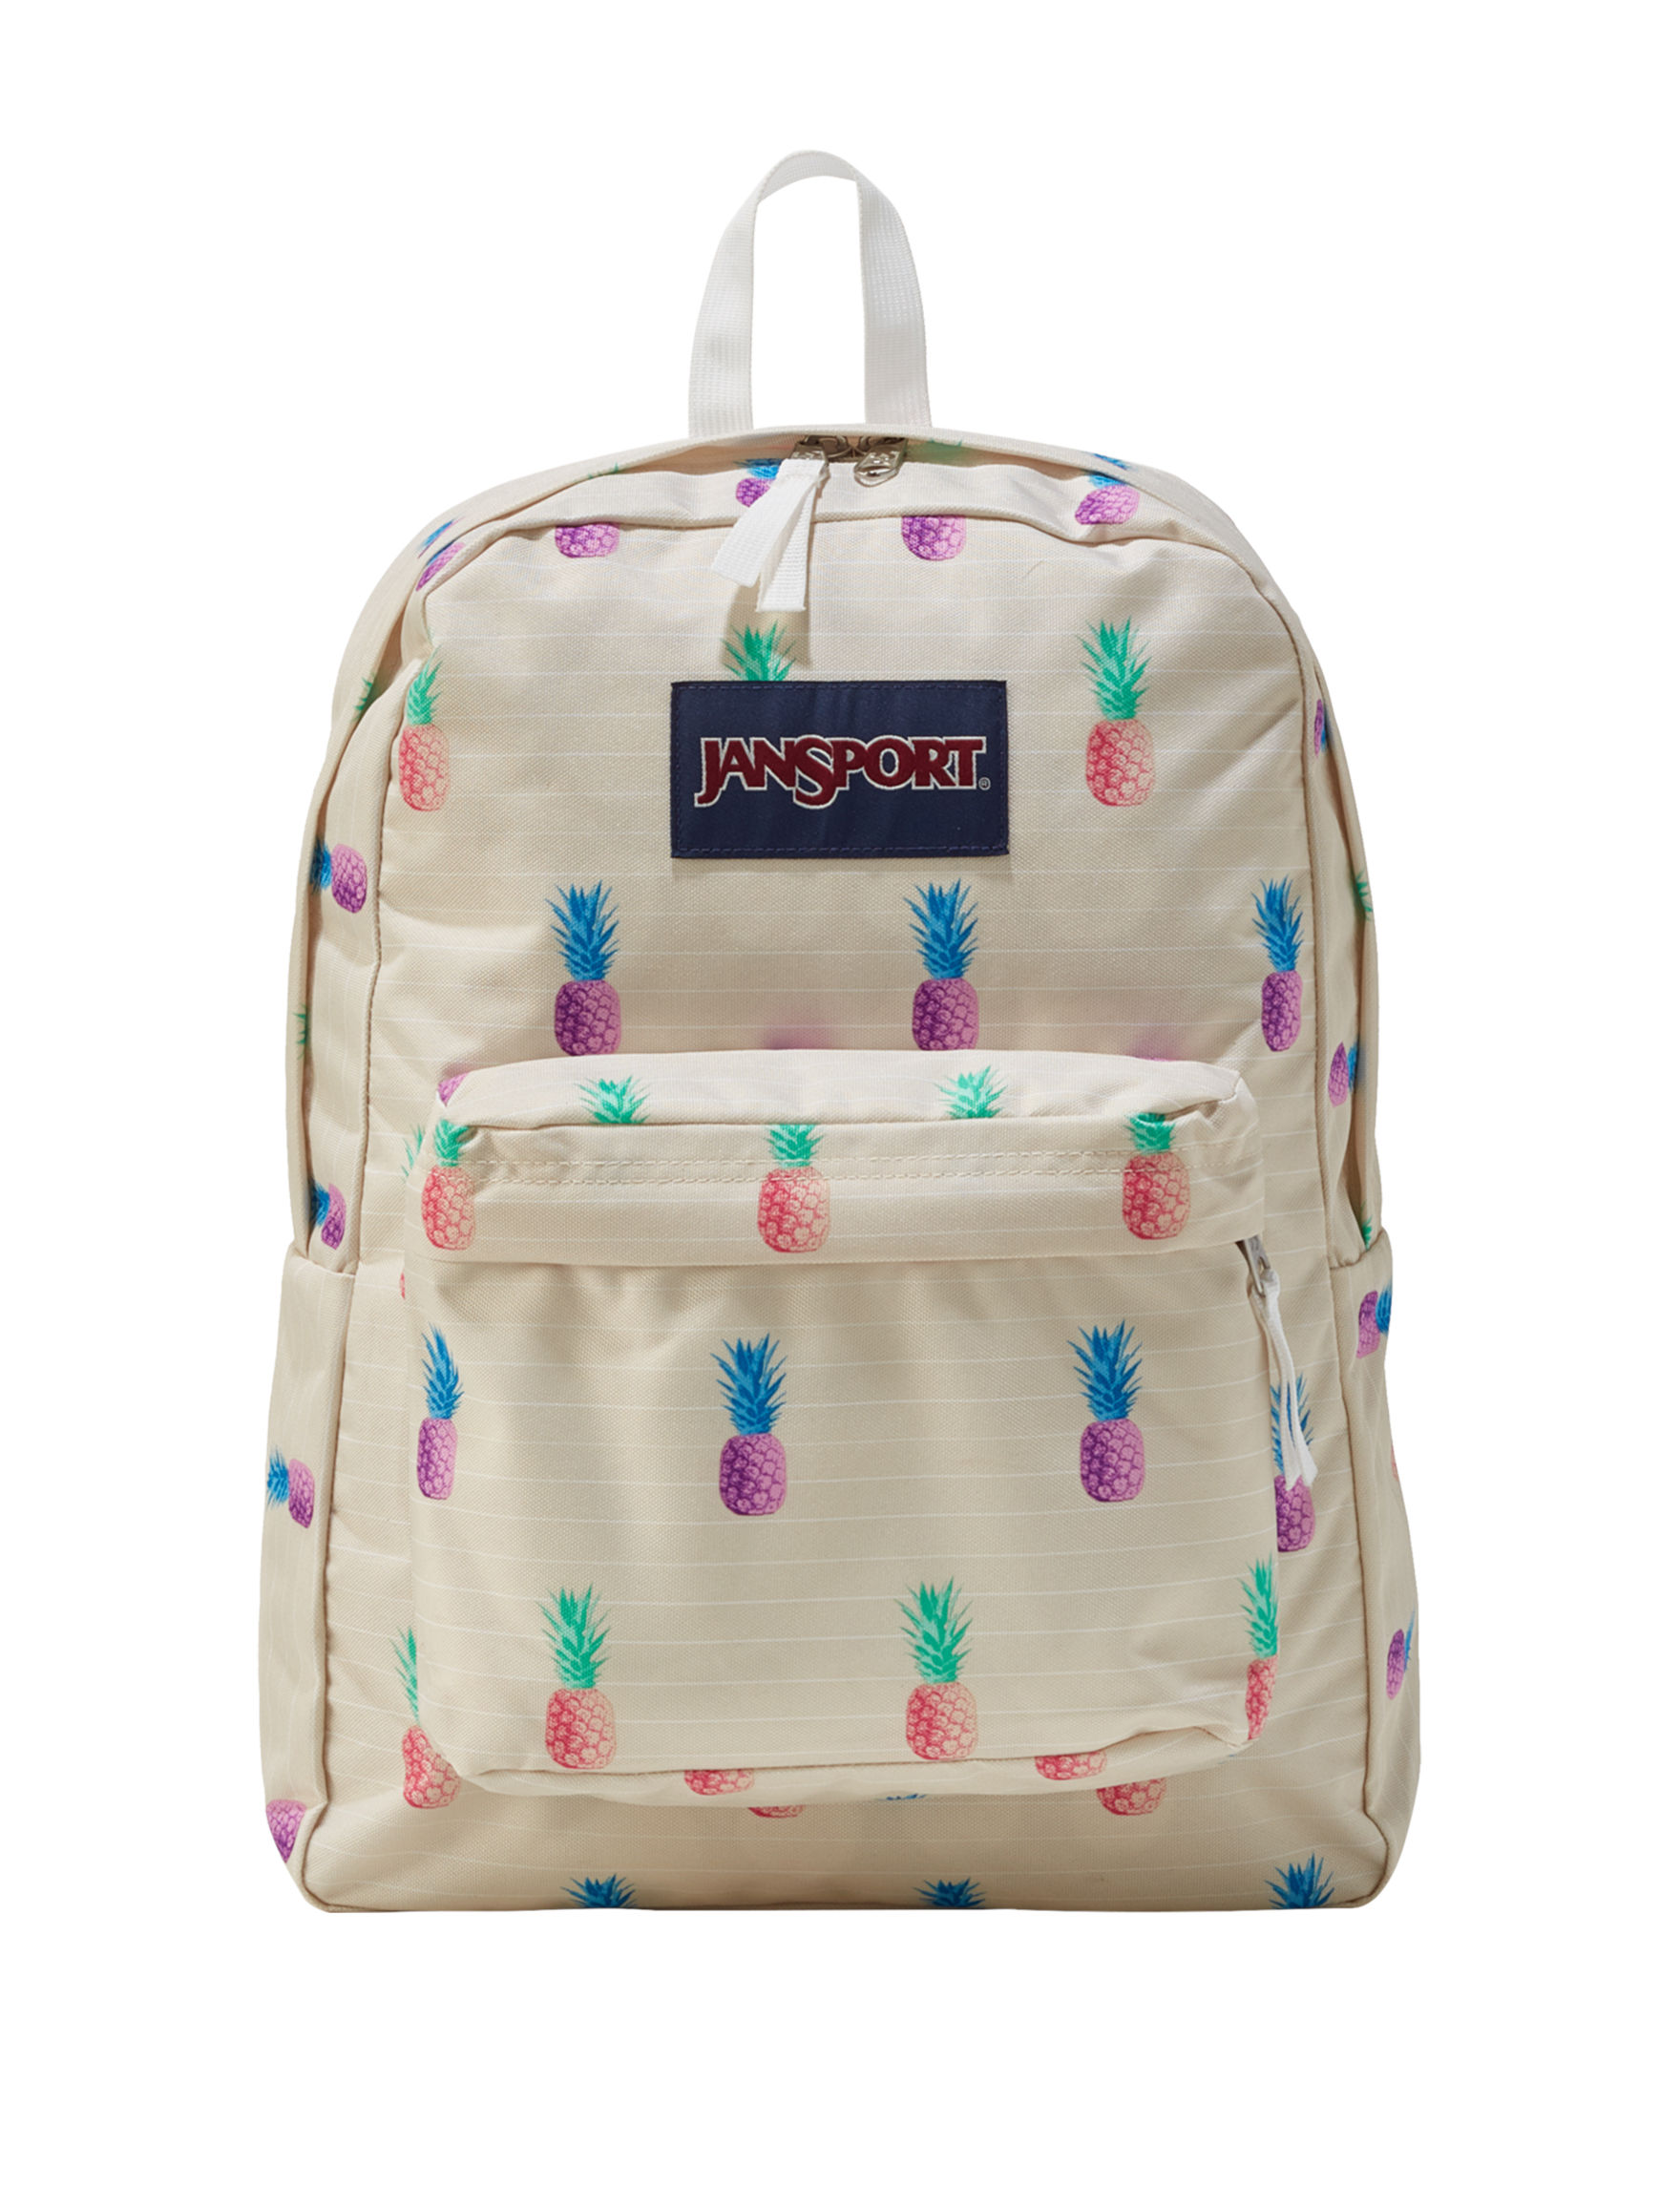 Jansport White Bookbags & Backpacks